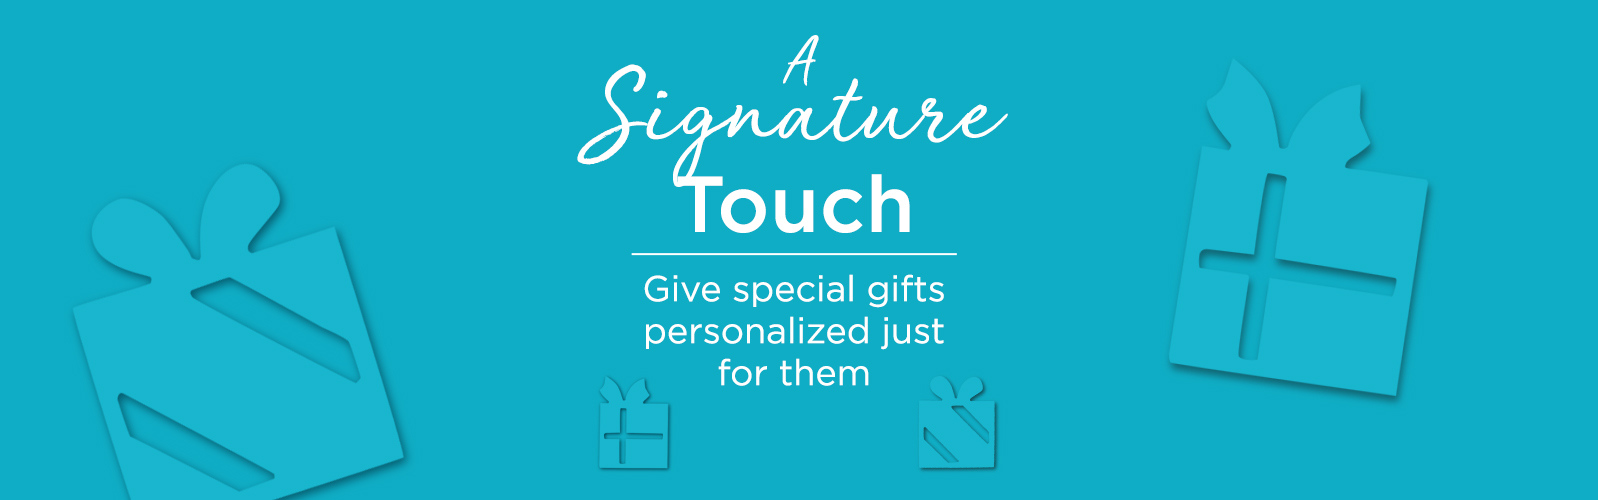 A Signature Touch.  Give special gifts personalized just for them.